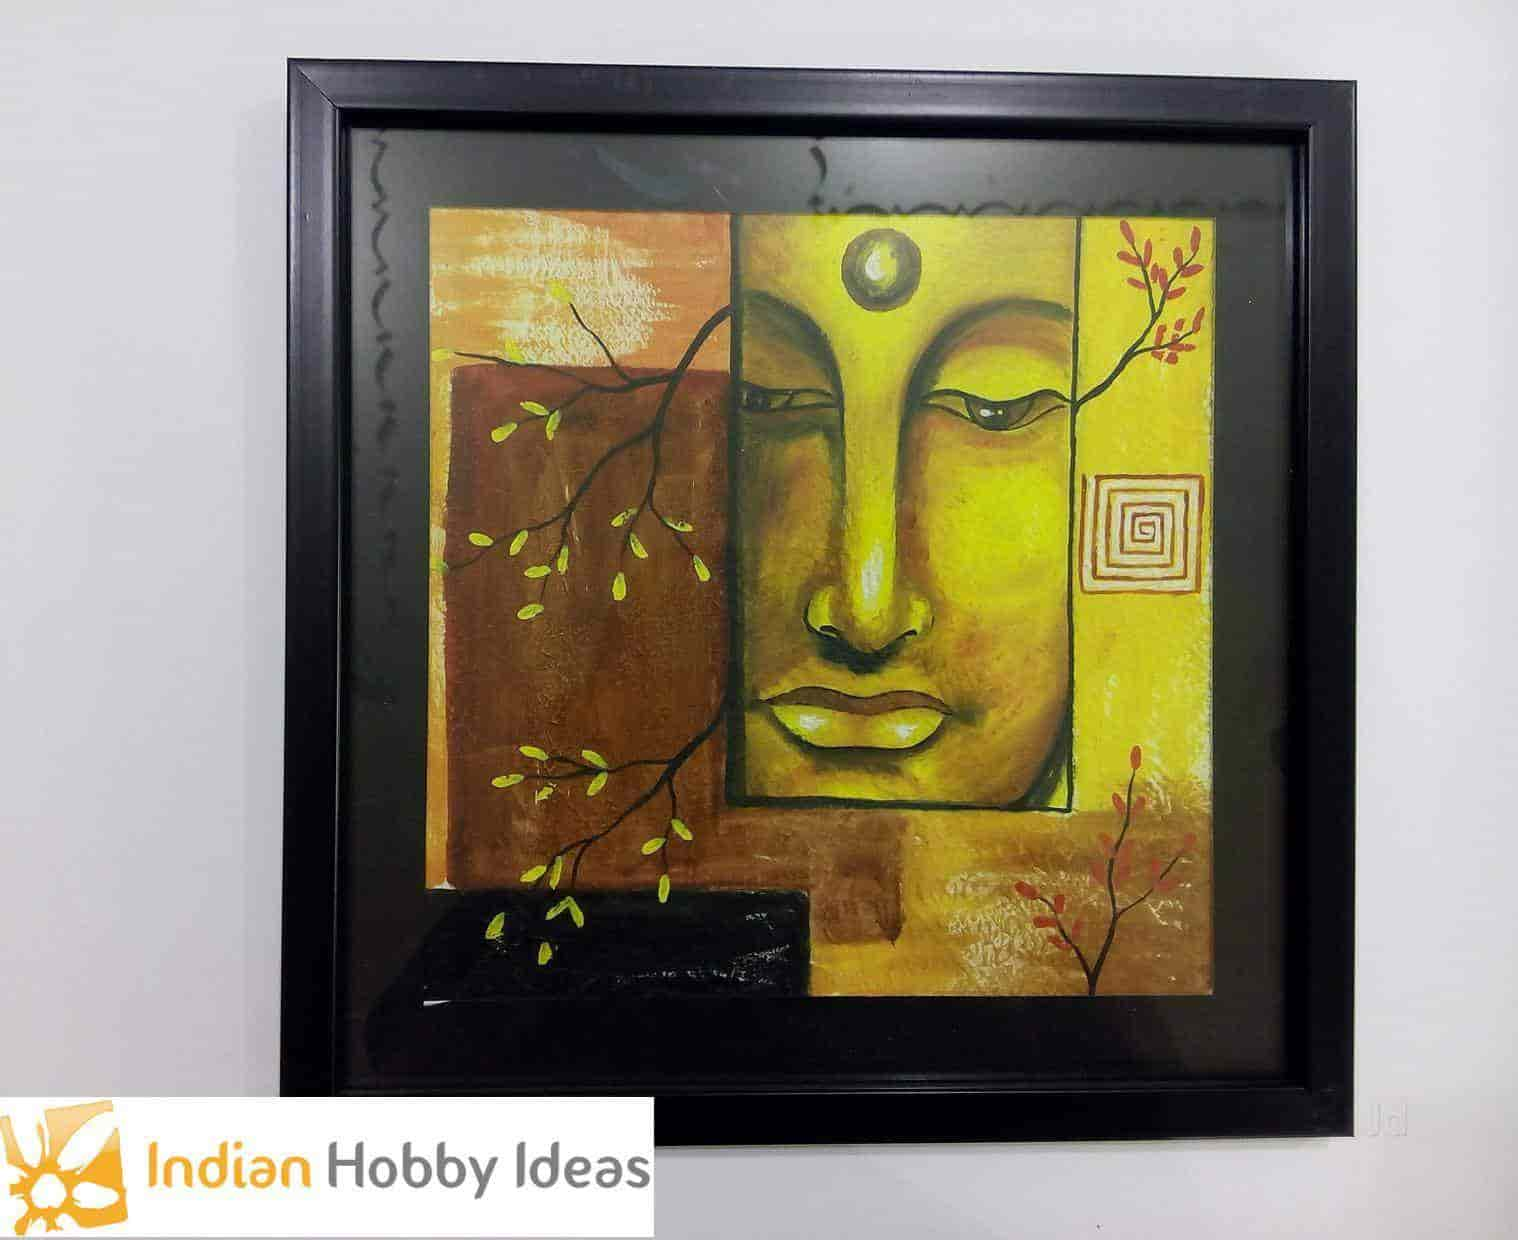 Indian Hobby Ideas Paschim Vihar Arts Crafts Cles In Delhi Justdial